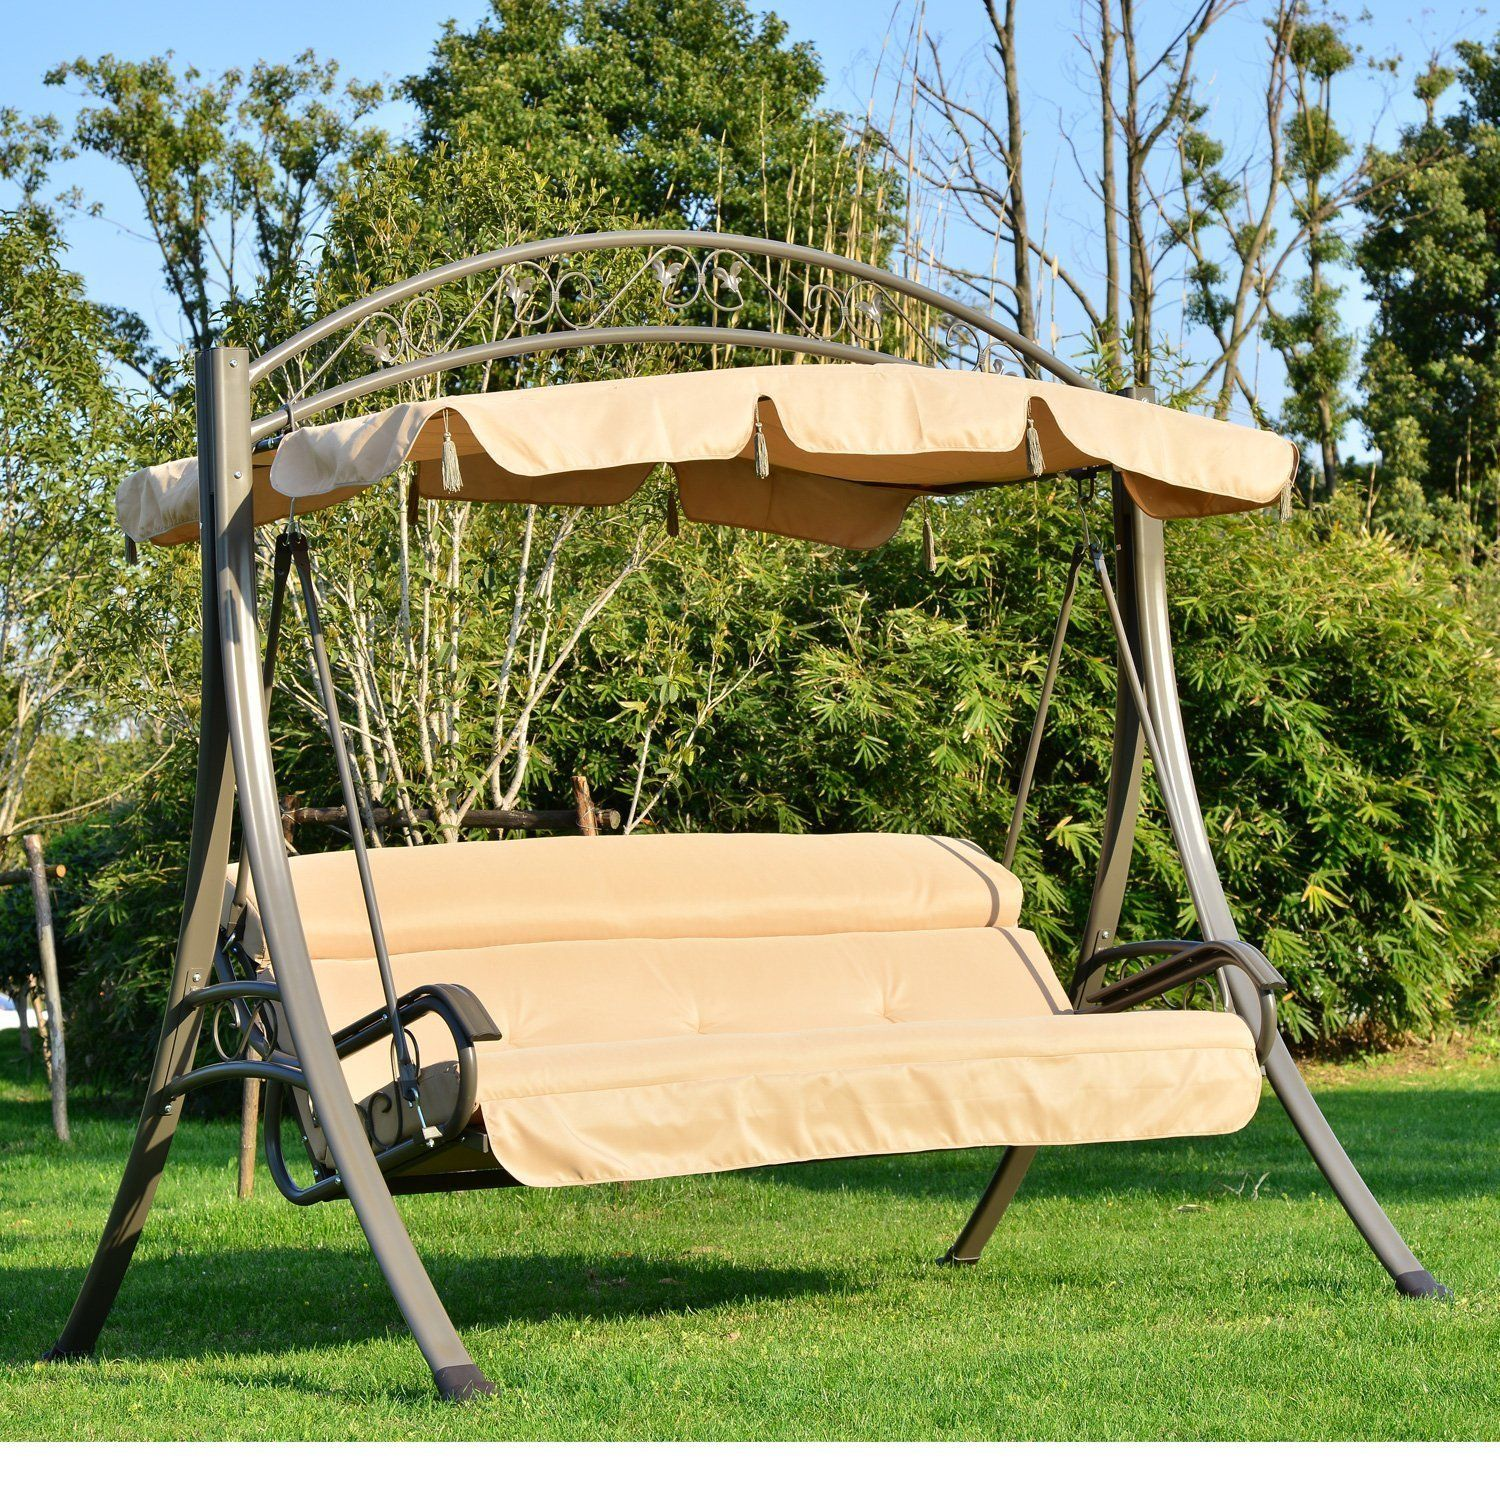 Outsunny 3 Seater Outdoor Garden Patio Metal Swing Chair Swinging